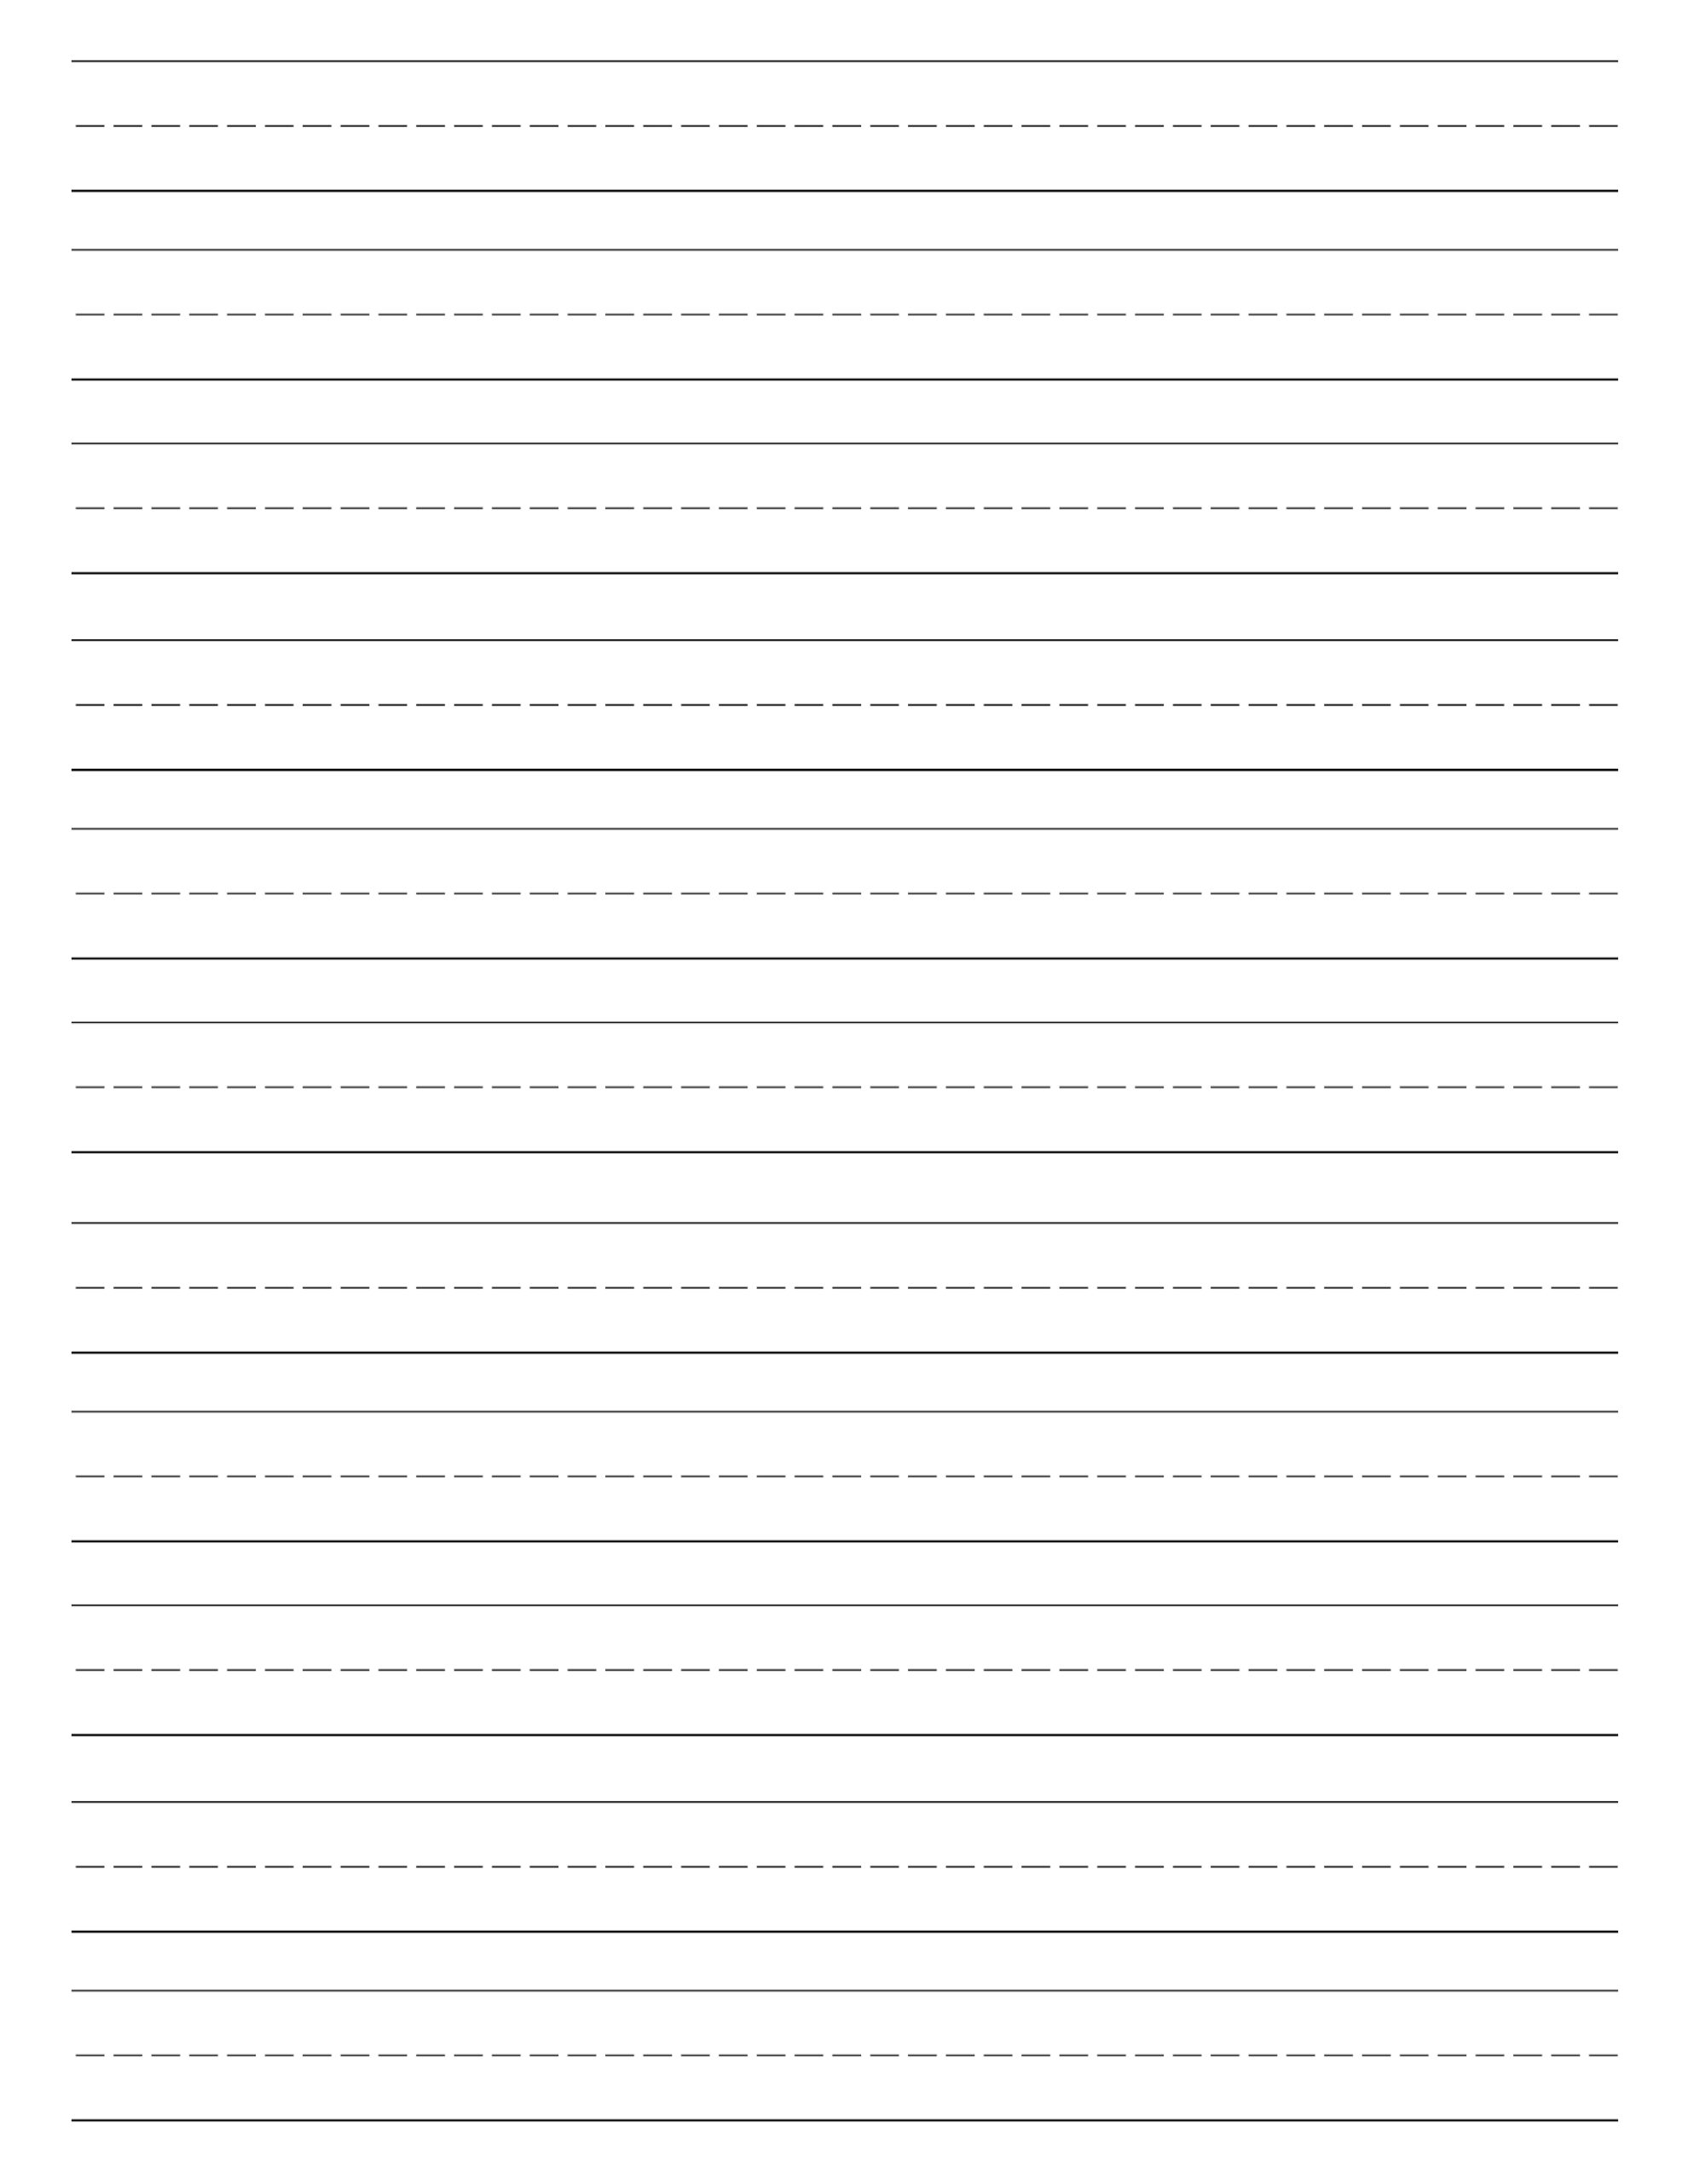 Free printable lined paper handwriting paper template for Learning to write paper template